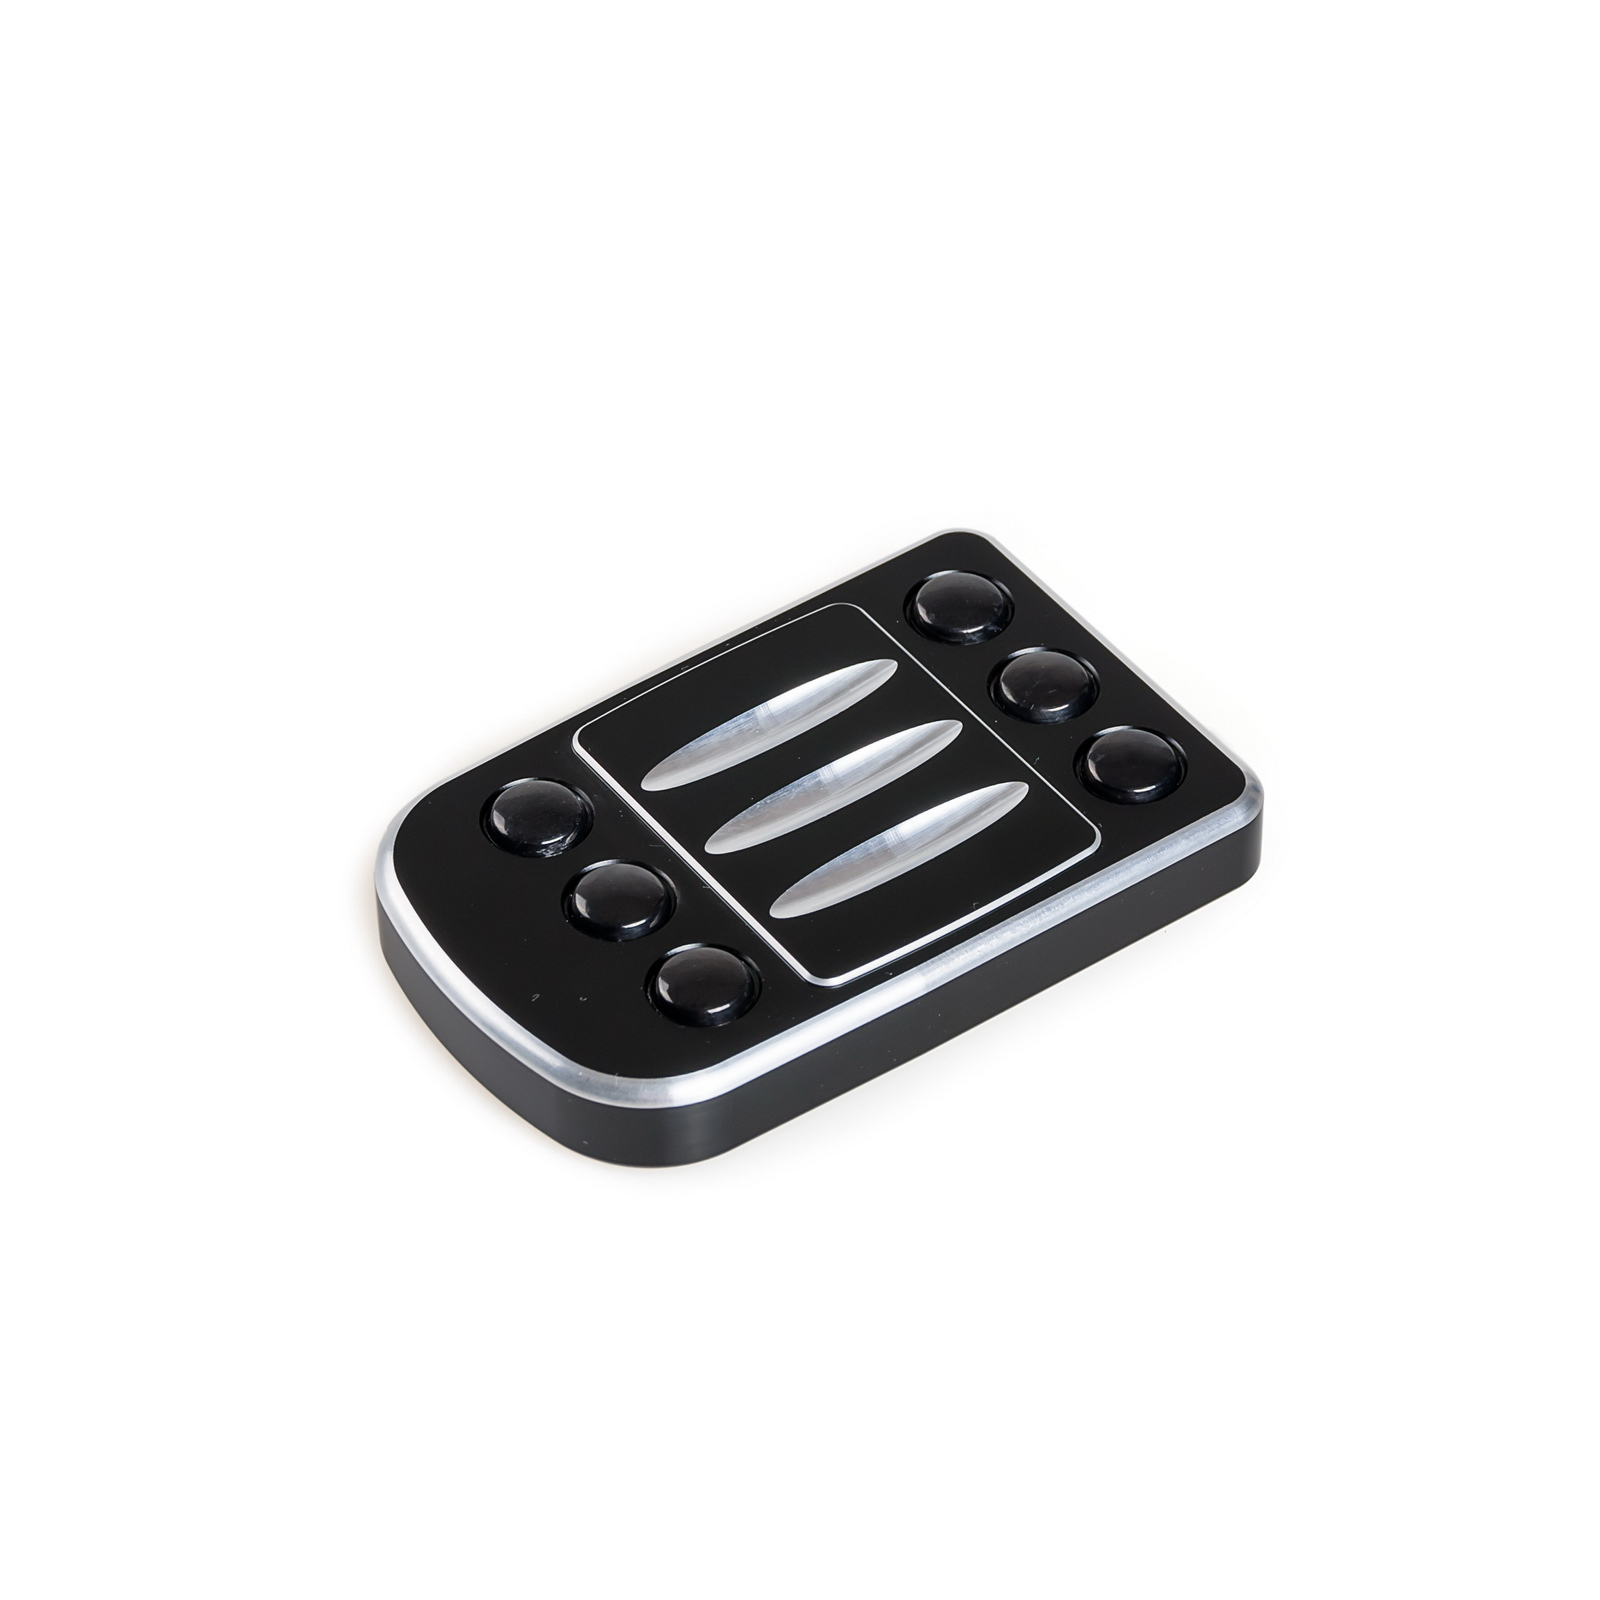 NICECNC Edge Cut Brake Pedal Pad Large Foot Pegs Step Plate For Harley Softail Dyna Touring Street Glide Road King Fat Boy CVO